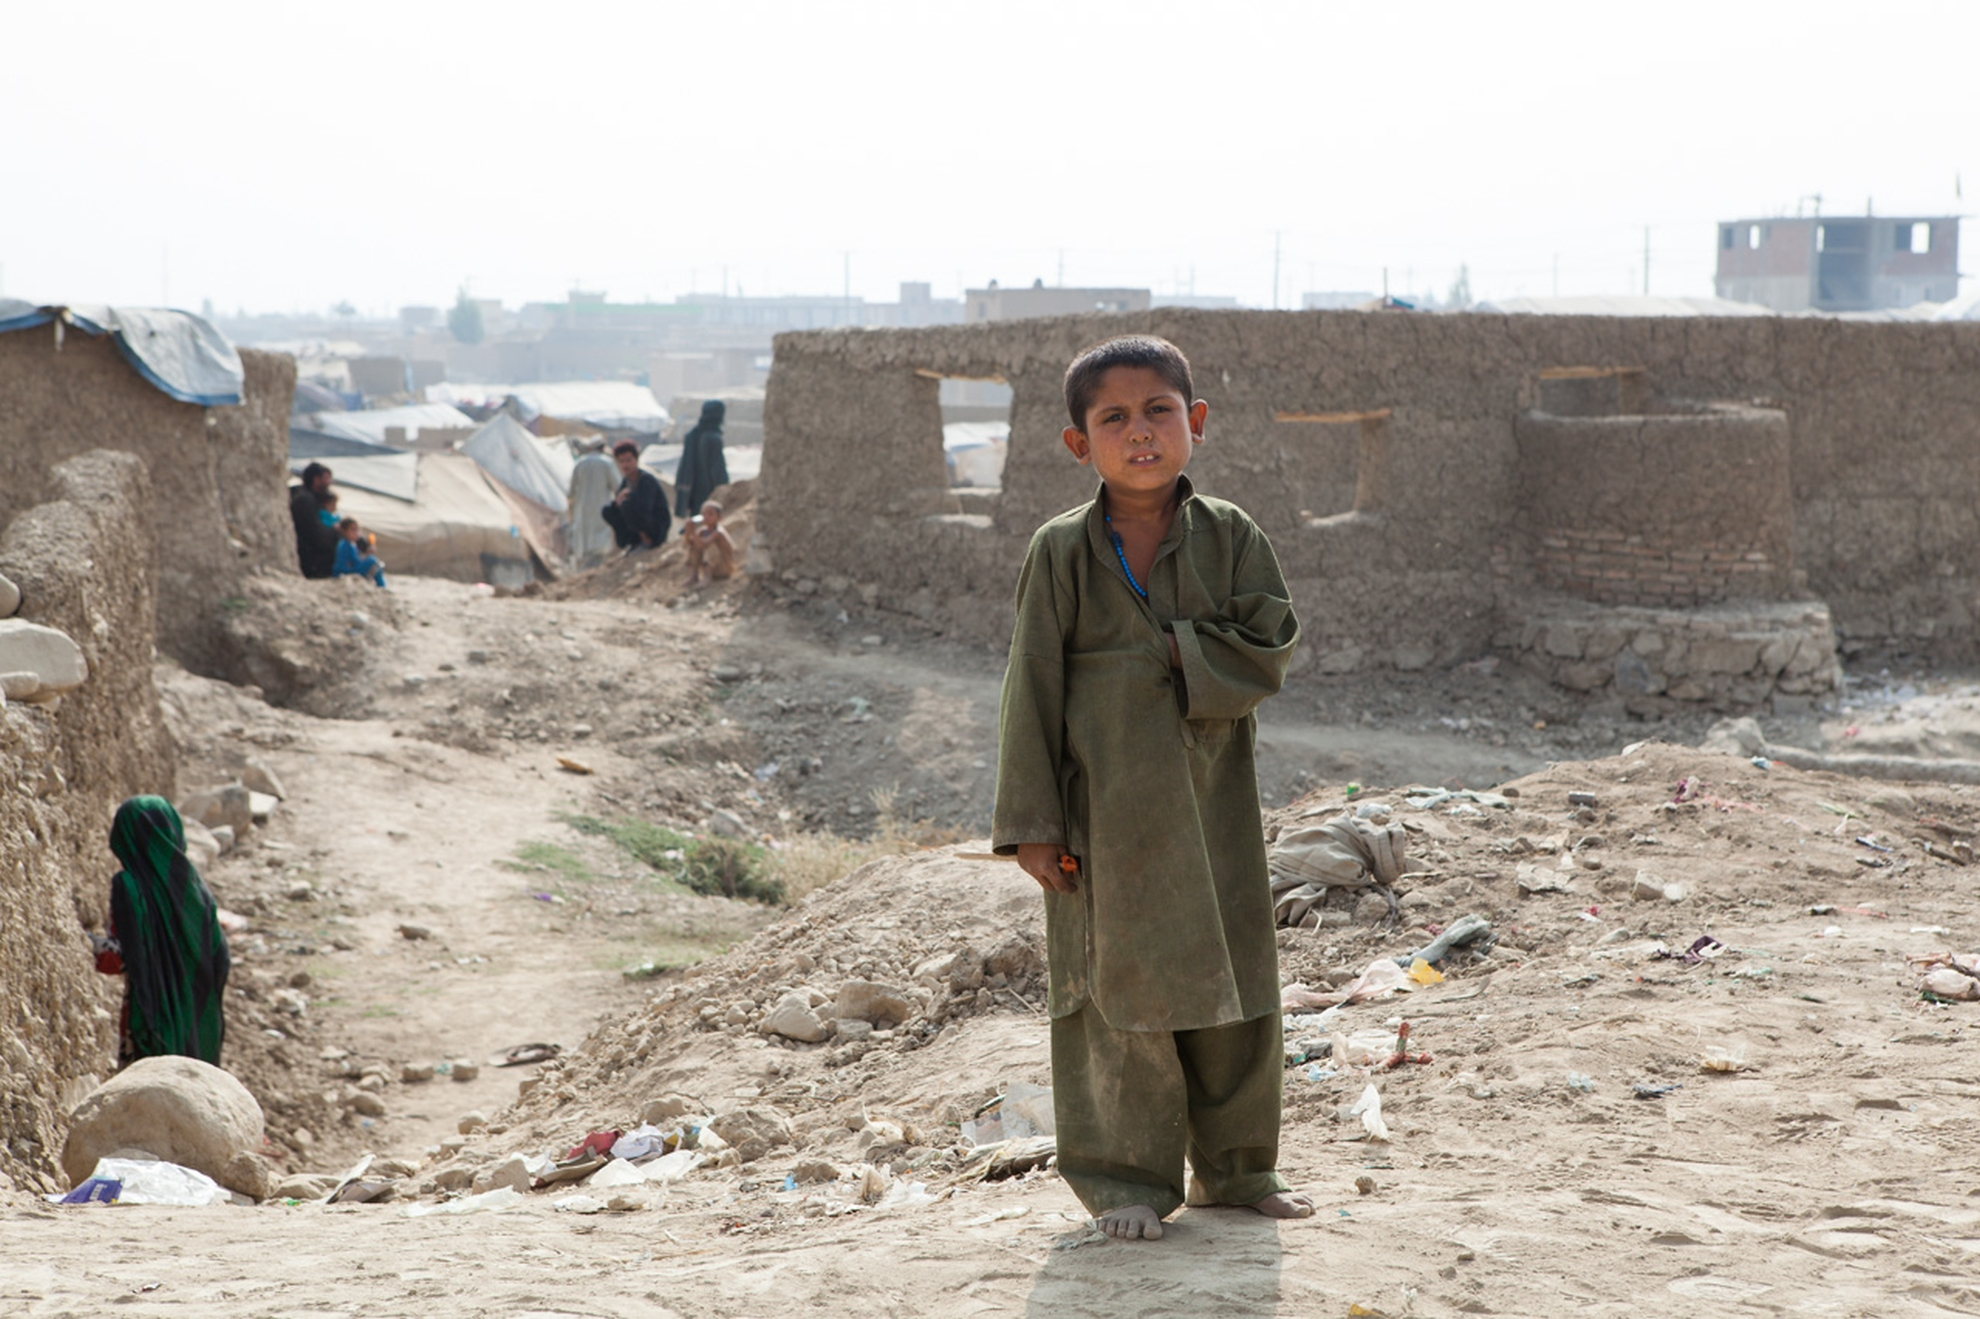 Boy in a refugee camp on the outskirts of Kabul. Poto: Danish Refugee Council/Erick Gerstner